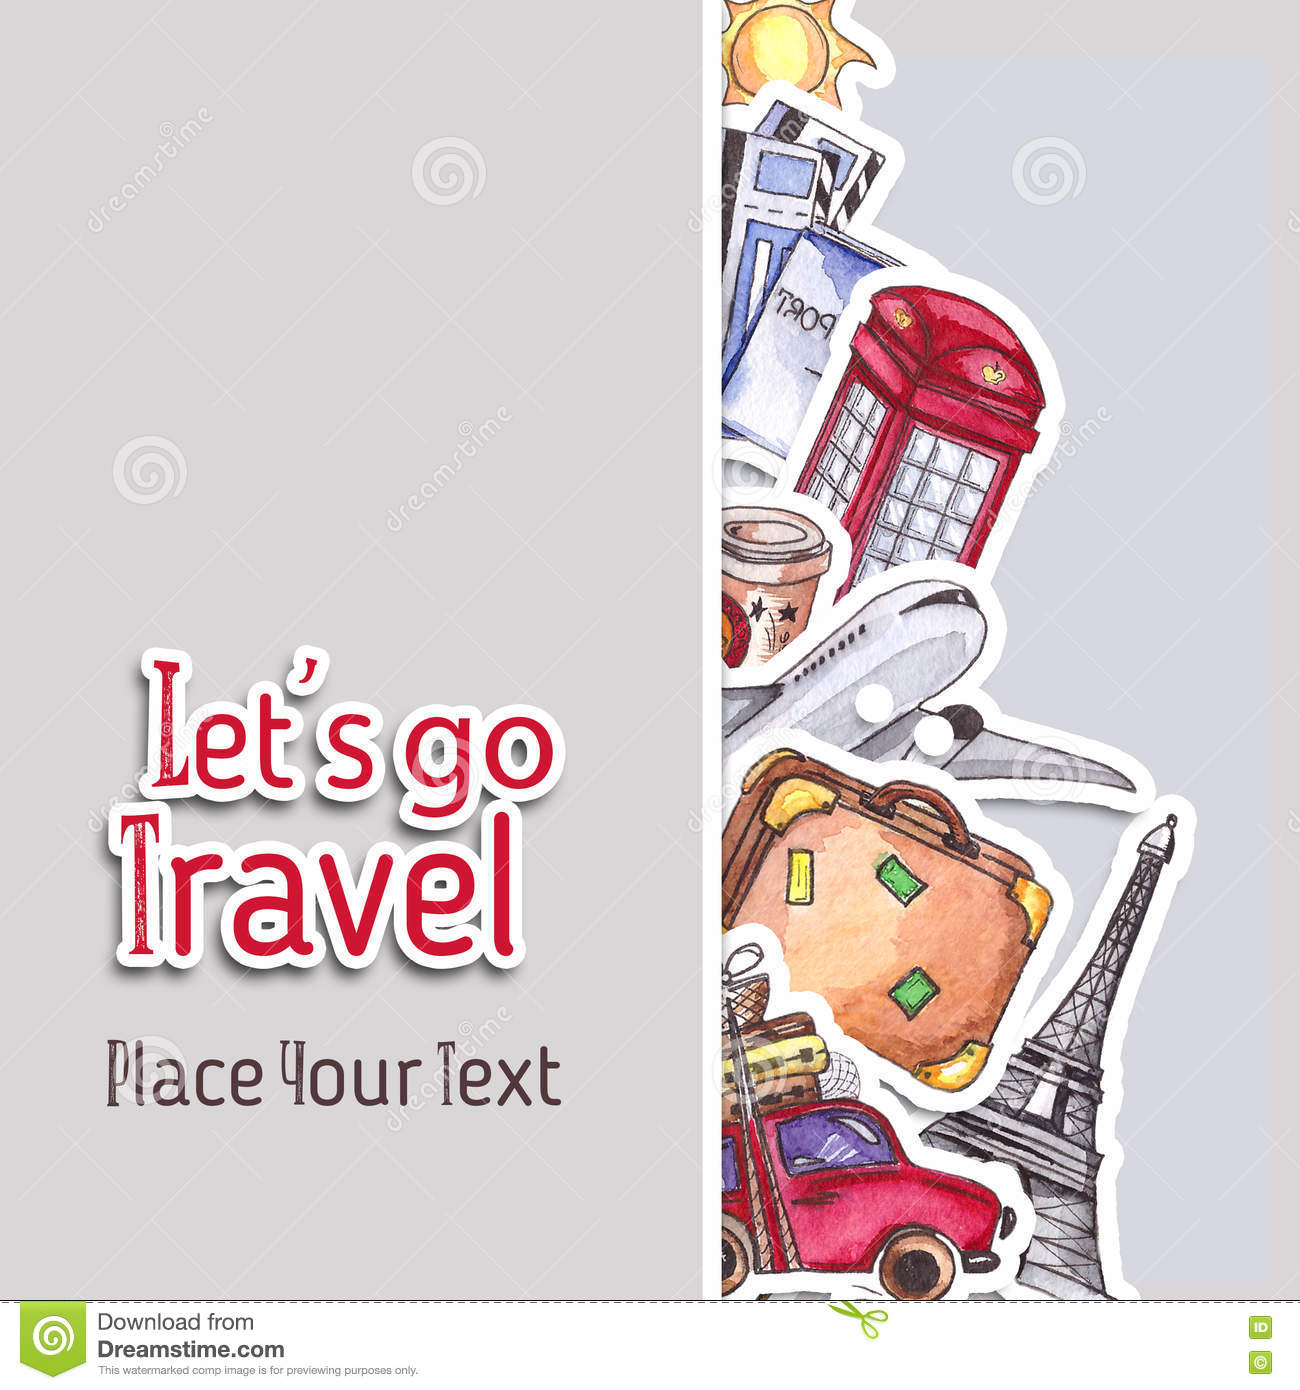 travel and tourism template london red telephone box statue of